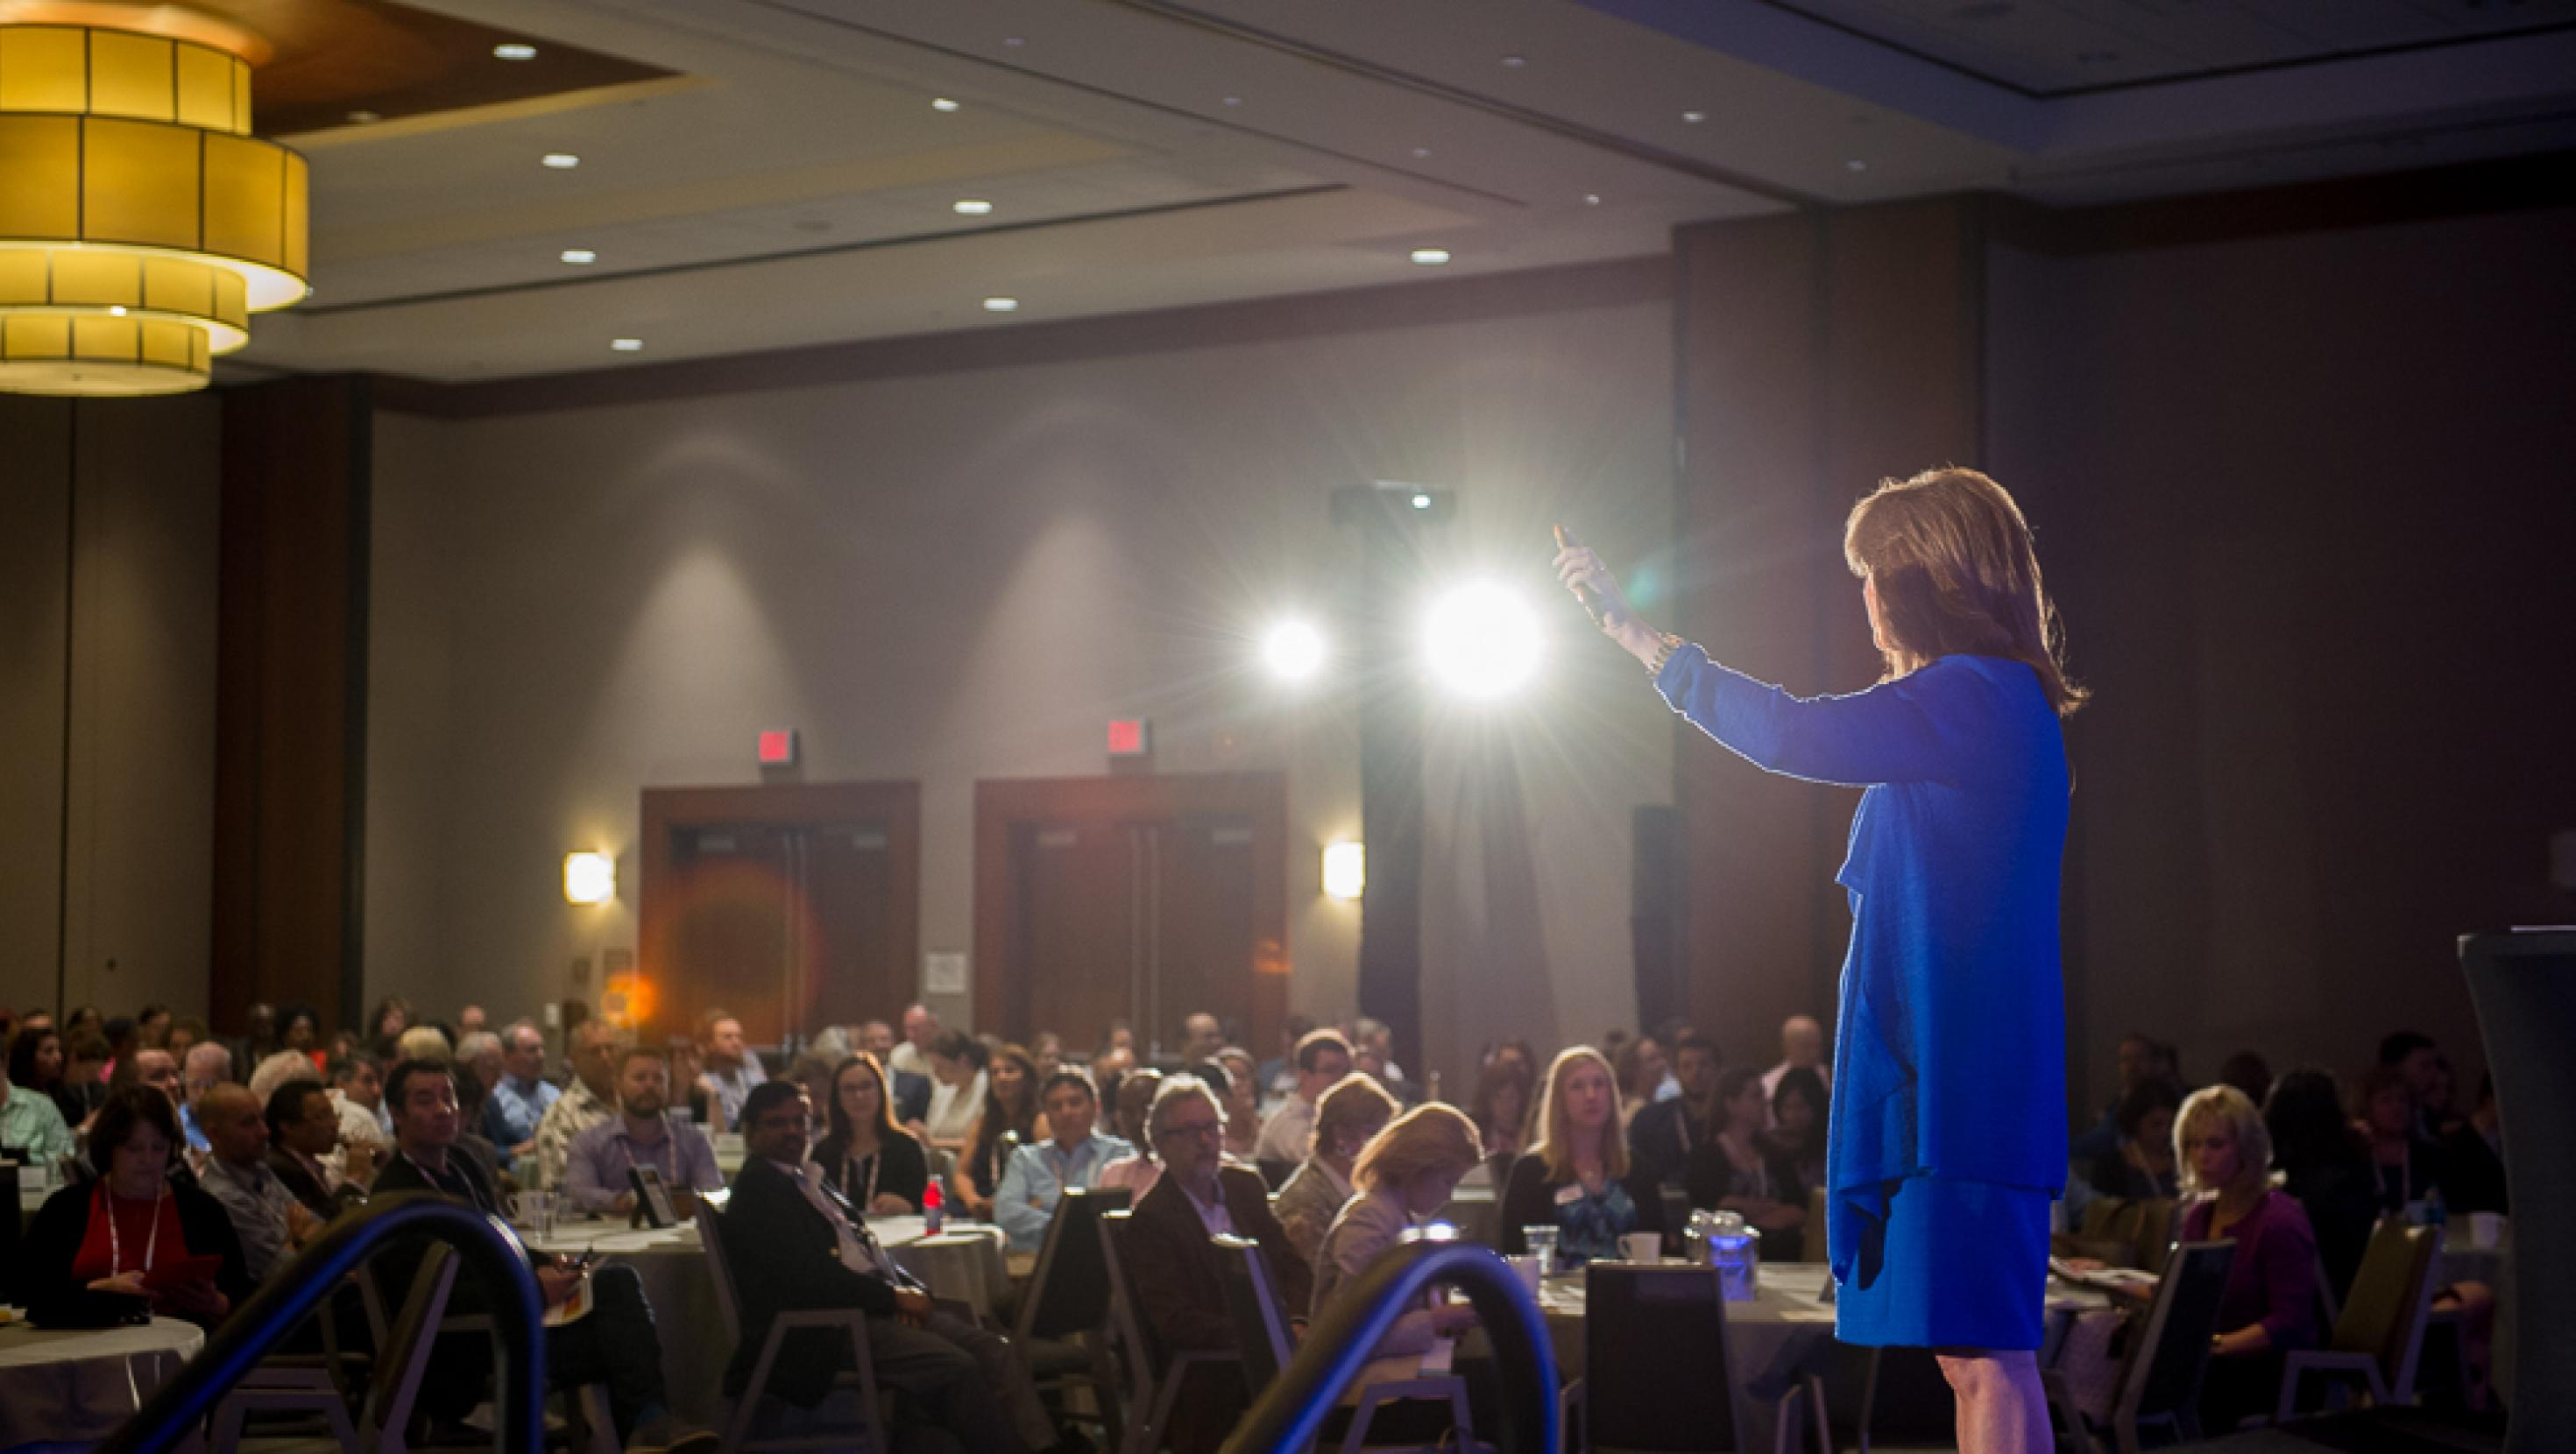 A picture of APQC staff member Cindy Hubert keynoting at APQC's Annual KM Conference